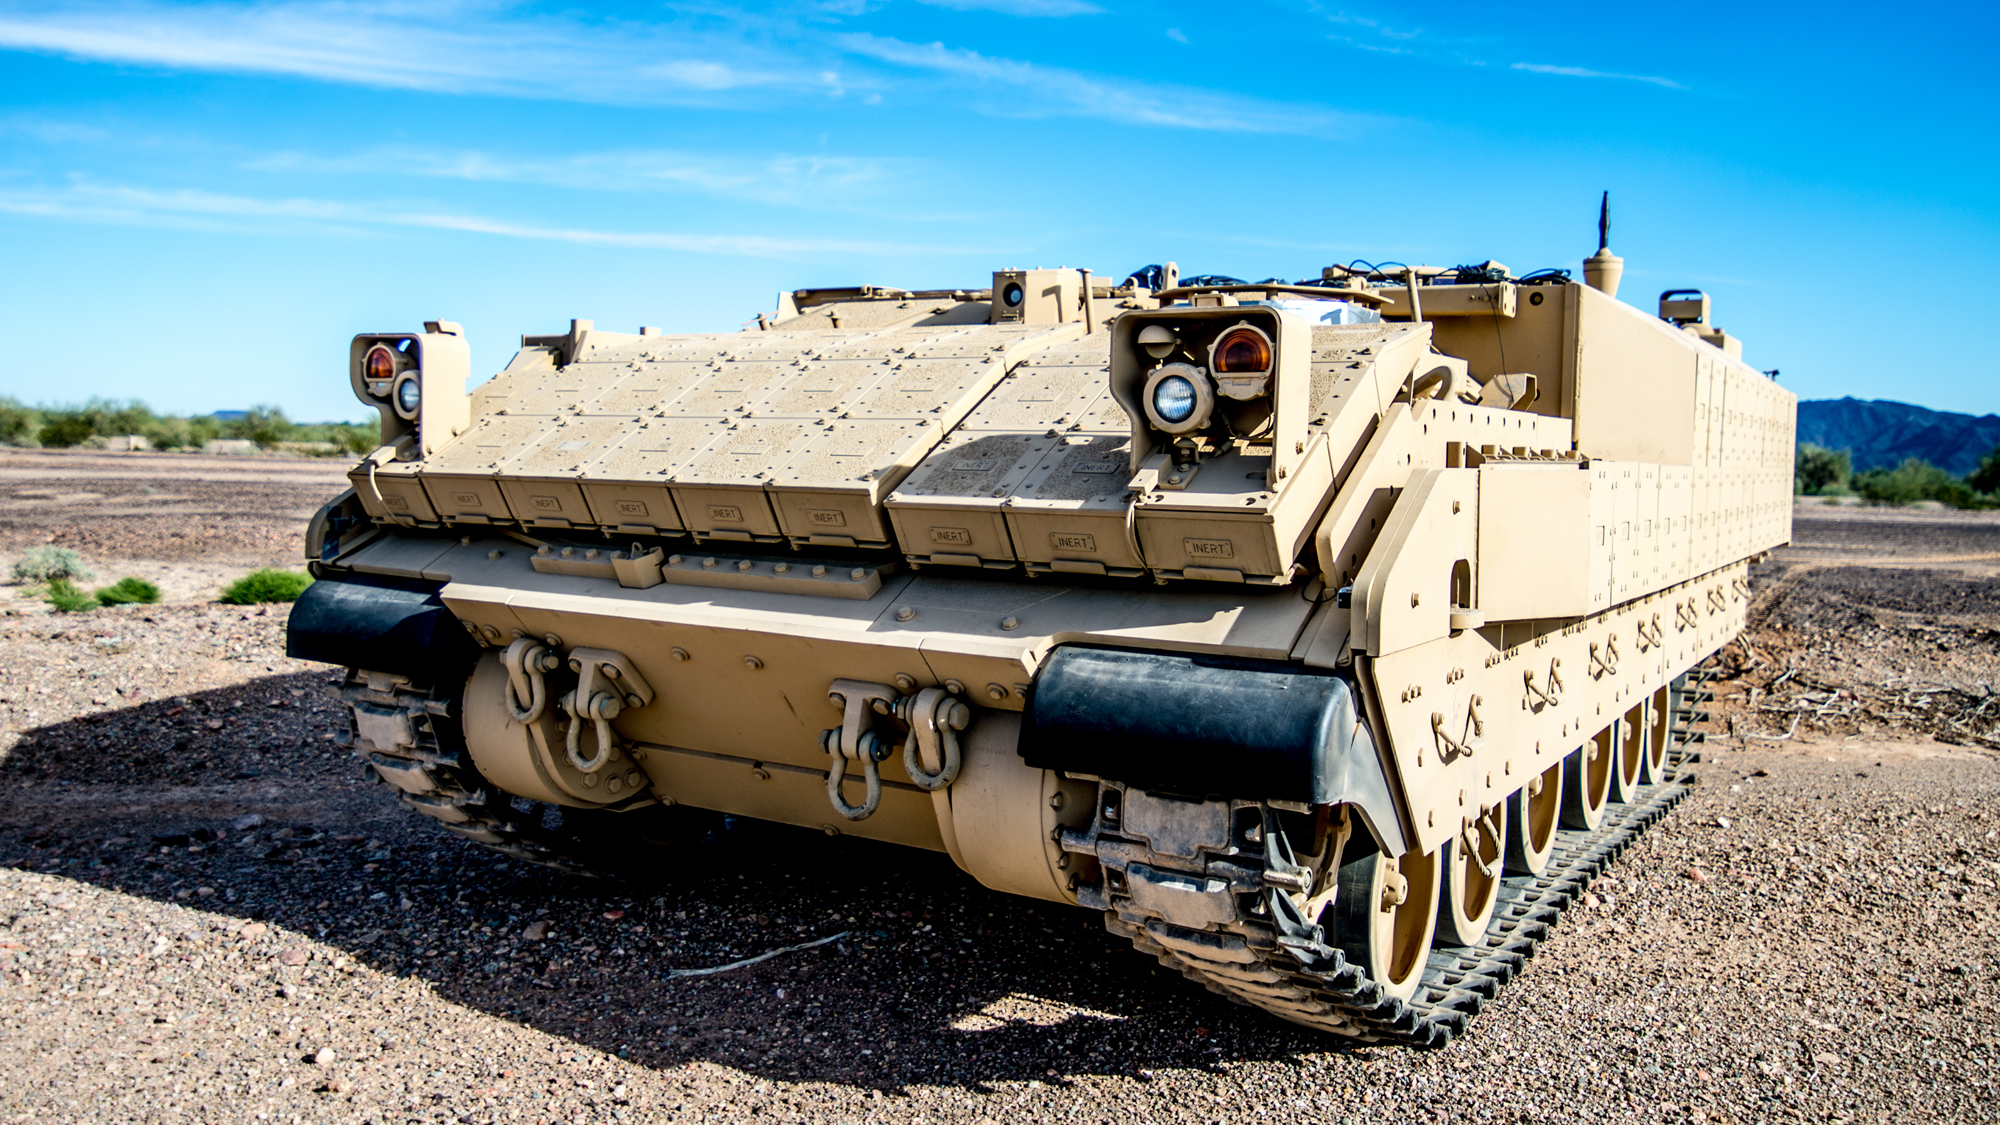 ARMORED, CAPABLE AND VERSATILE